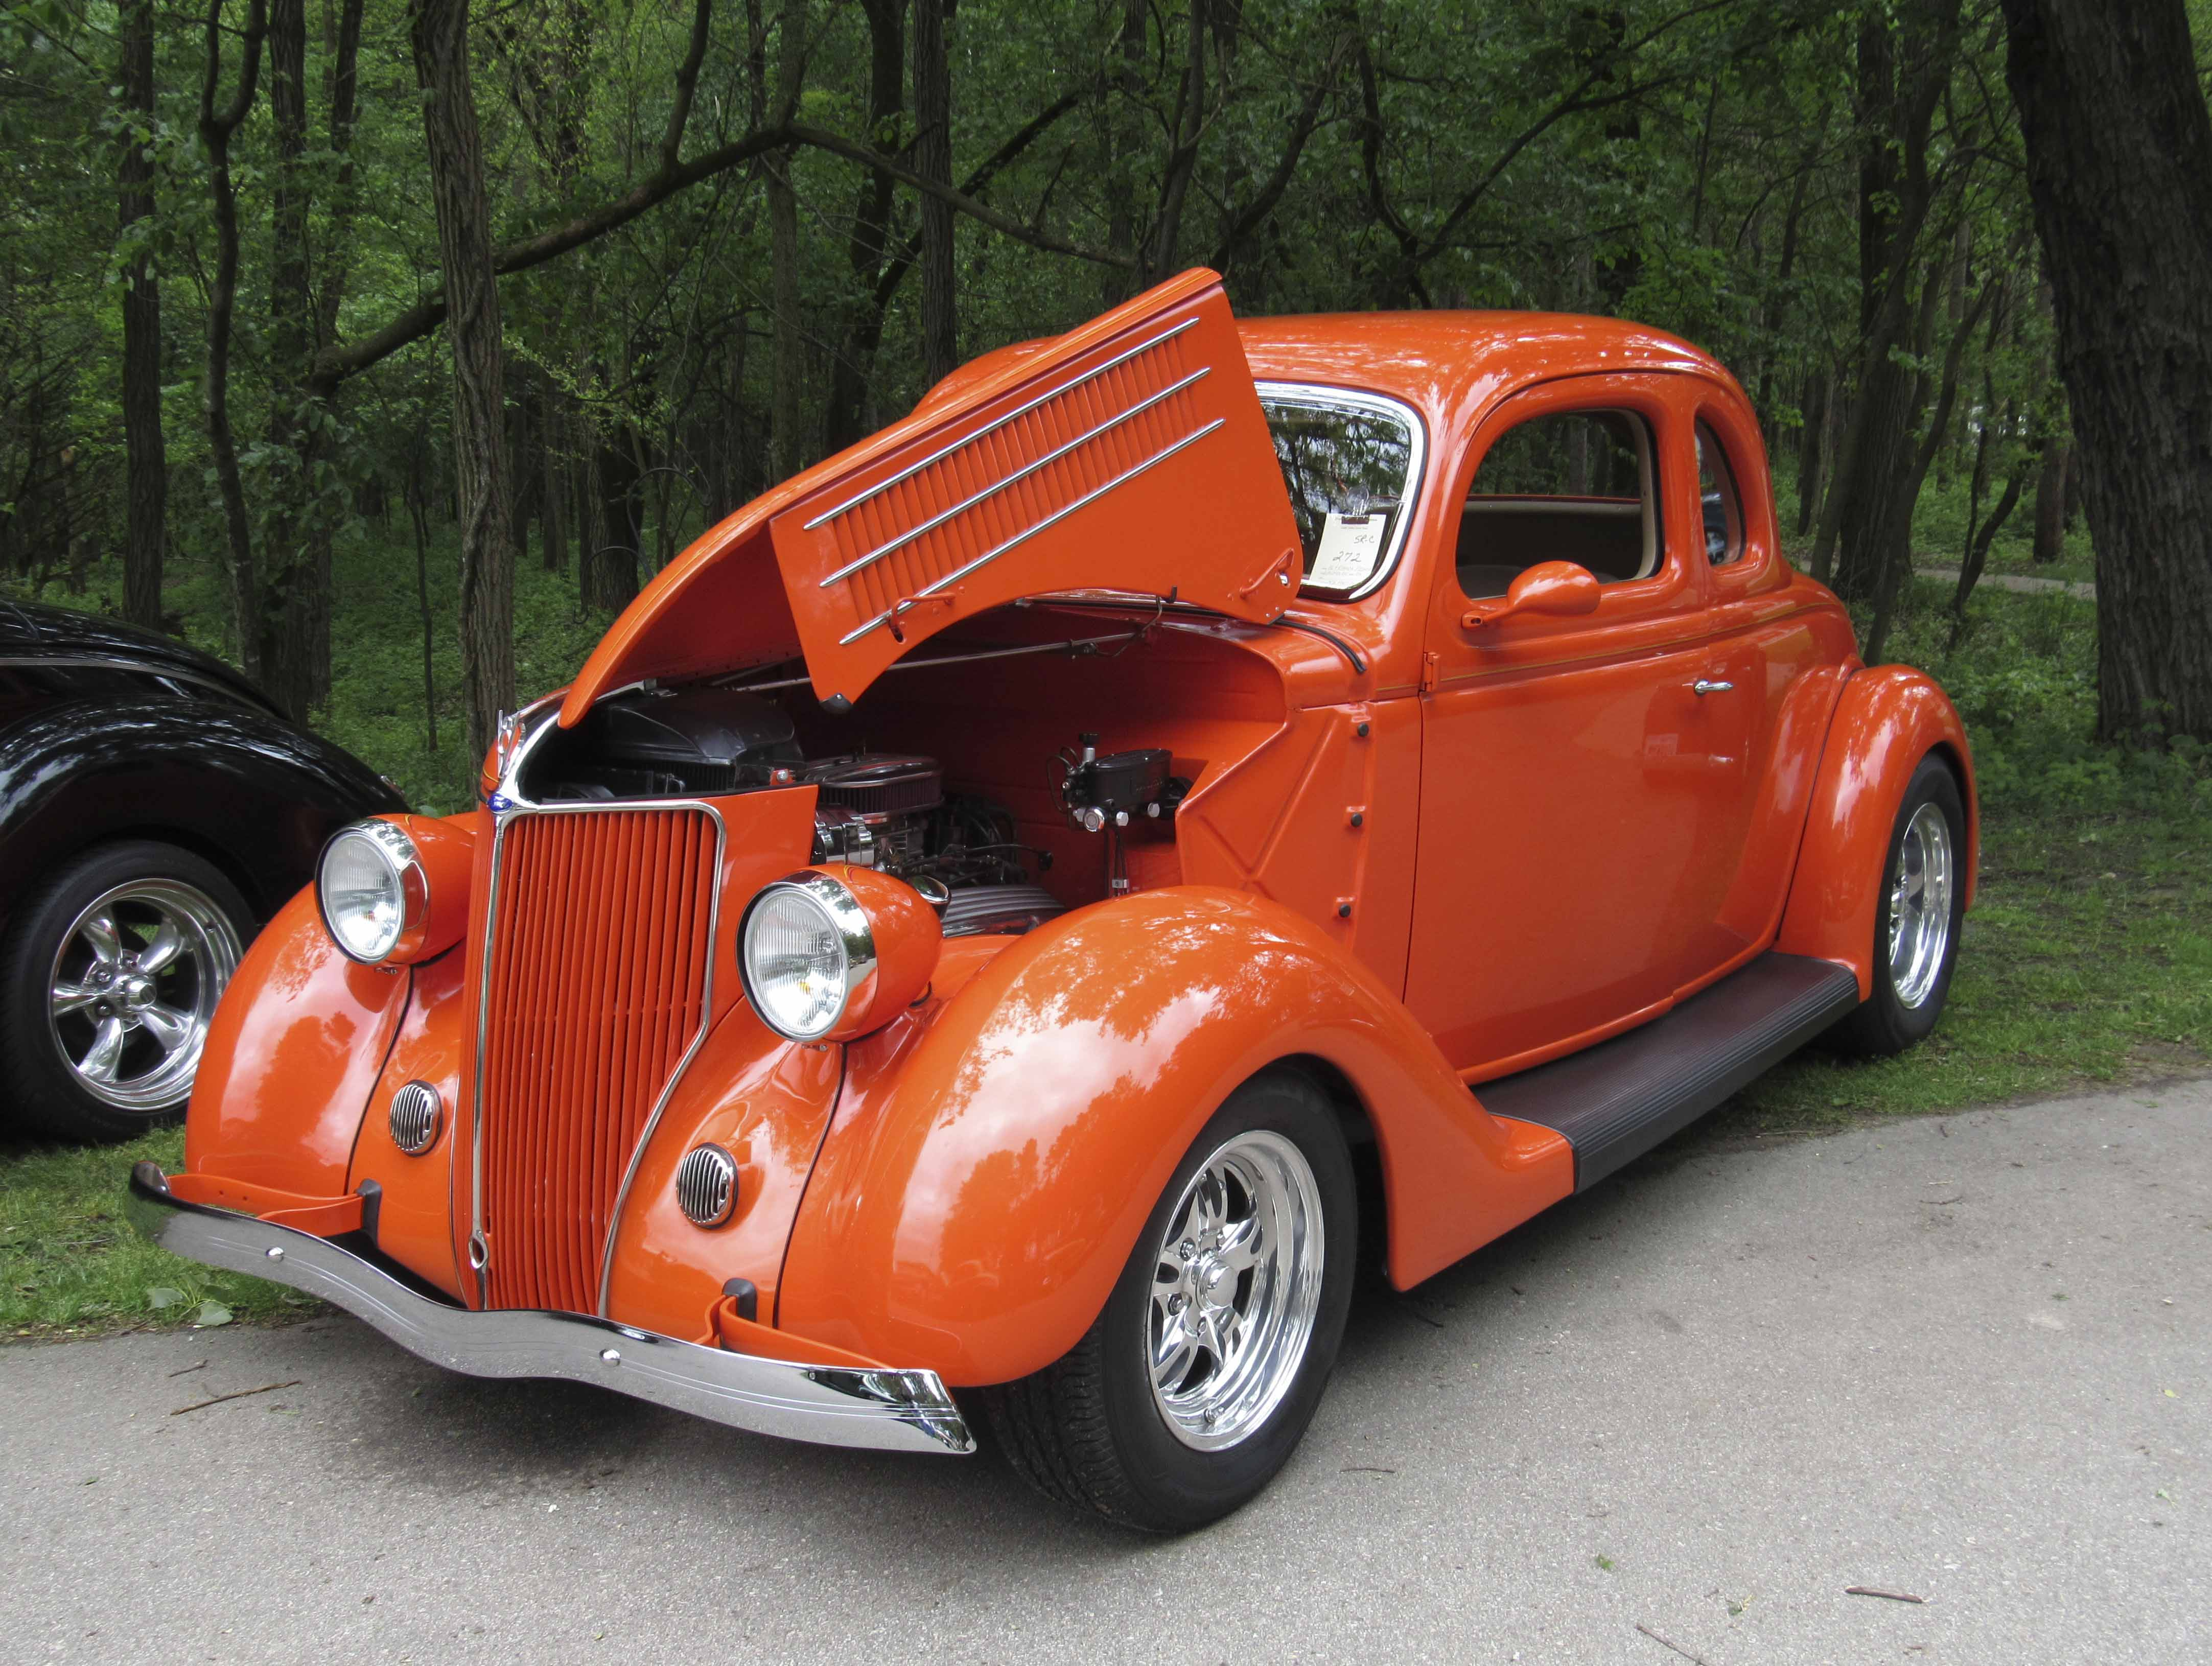 This bright orange 1936 Ford Coupe belongs to Al and Rhonda Pearce of Washburn, Iowa. This was just one of the hundreds and hundreds or cars on display at the Camp Courageous car show.